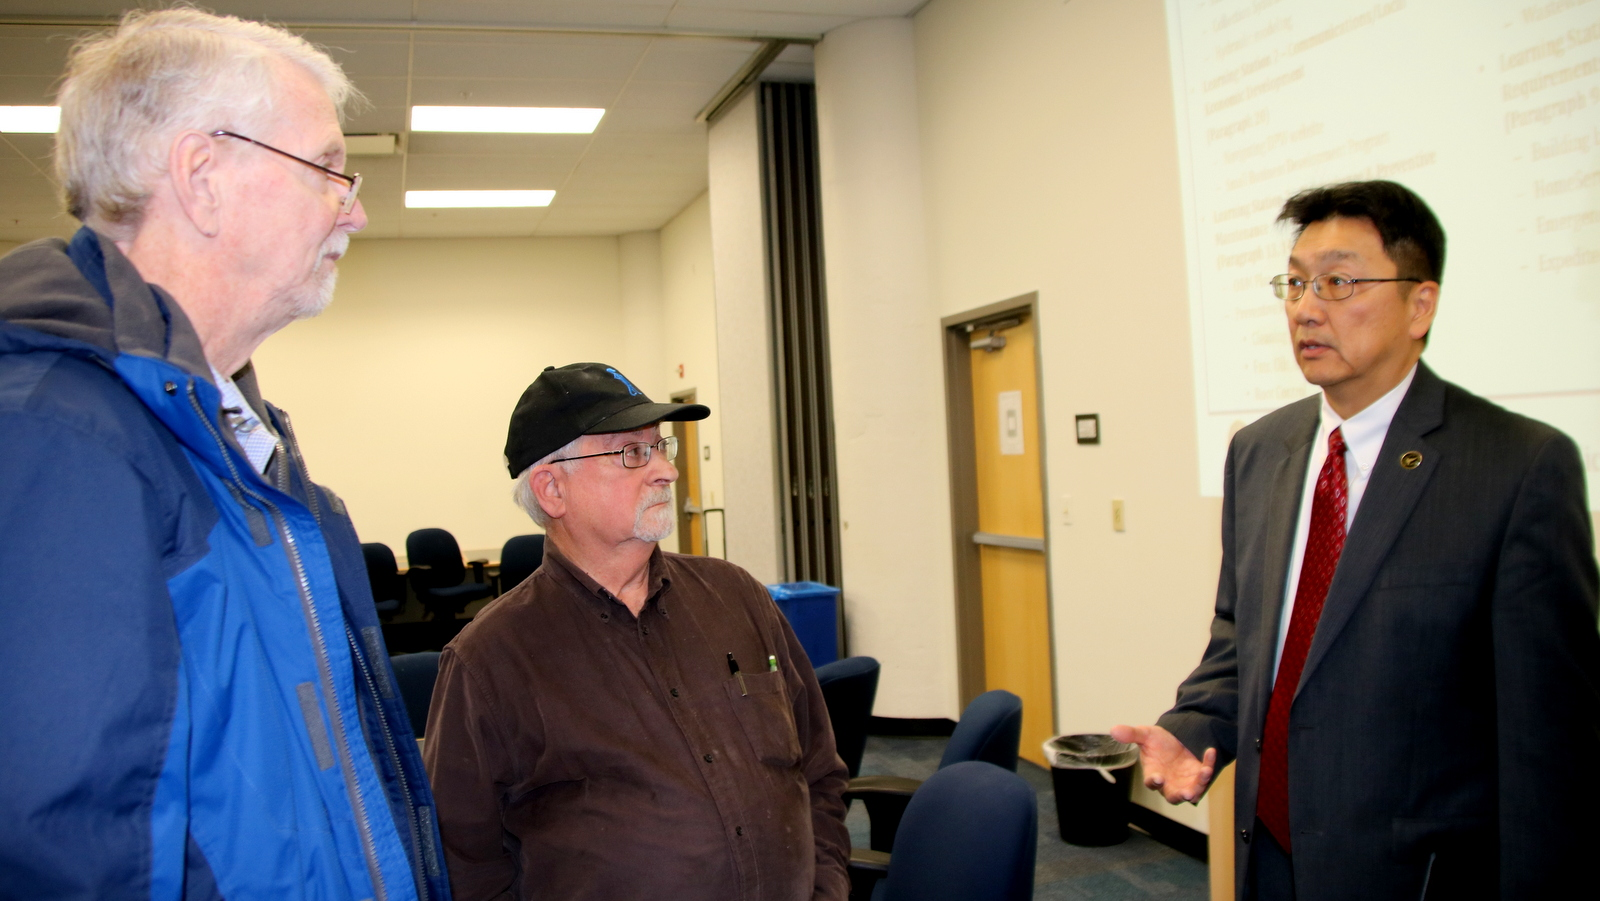 From left, Roger Gookin and Larry Fogelson, of the Green Towson Alliance, question Baltimore DPW chief Rudy Chow. (Fern Shen)